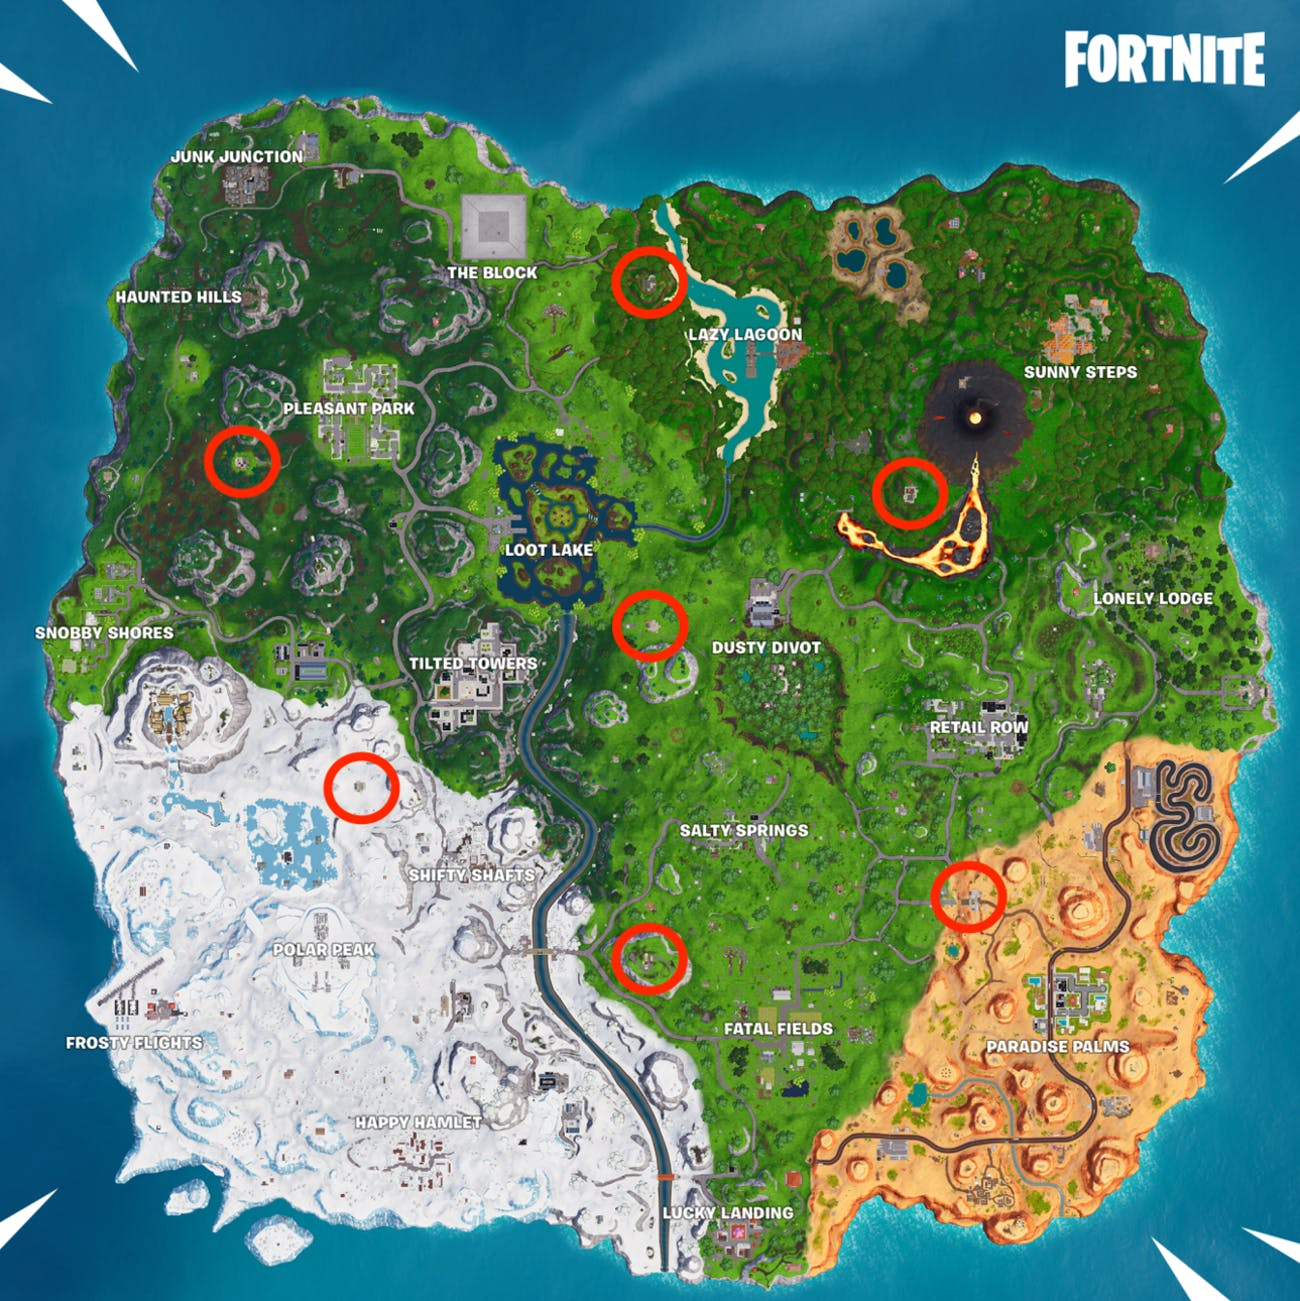 Fortnite' Pirate Camp Locations Map: Where to Find All 7 in